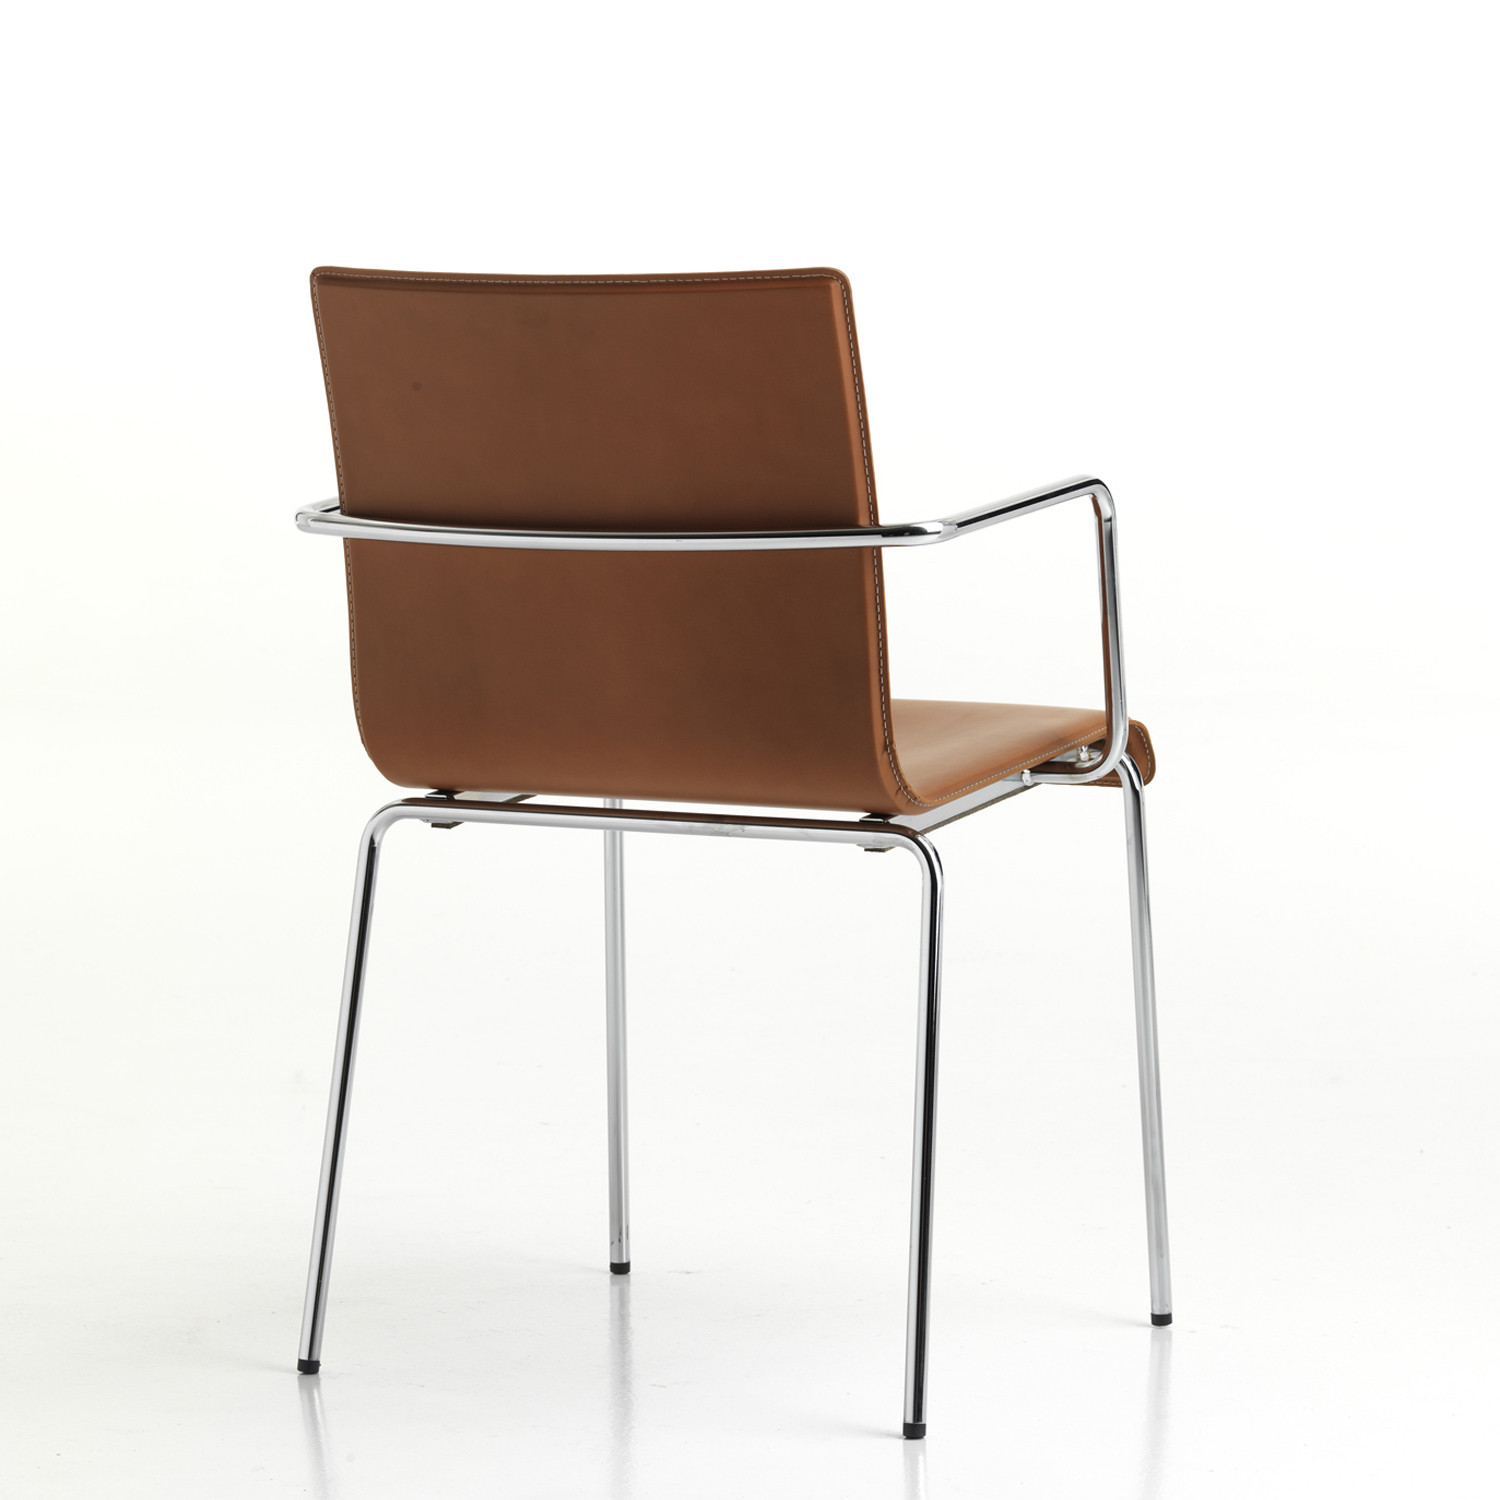 Kuadra XL Leather Chair by Pedrali